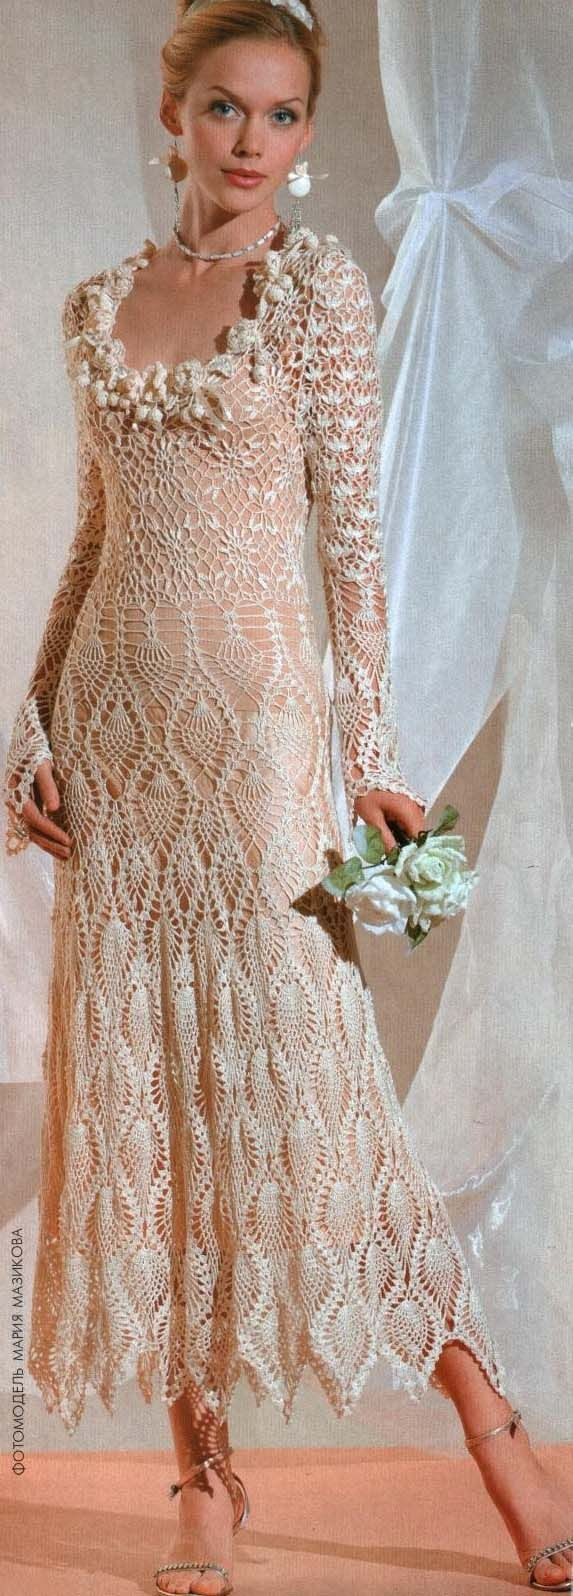 Beige wedding dress with diagrams,